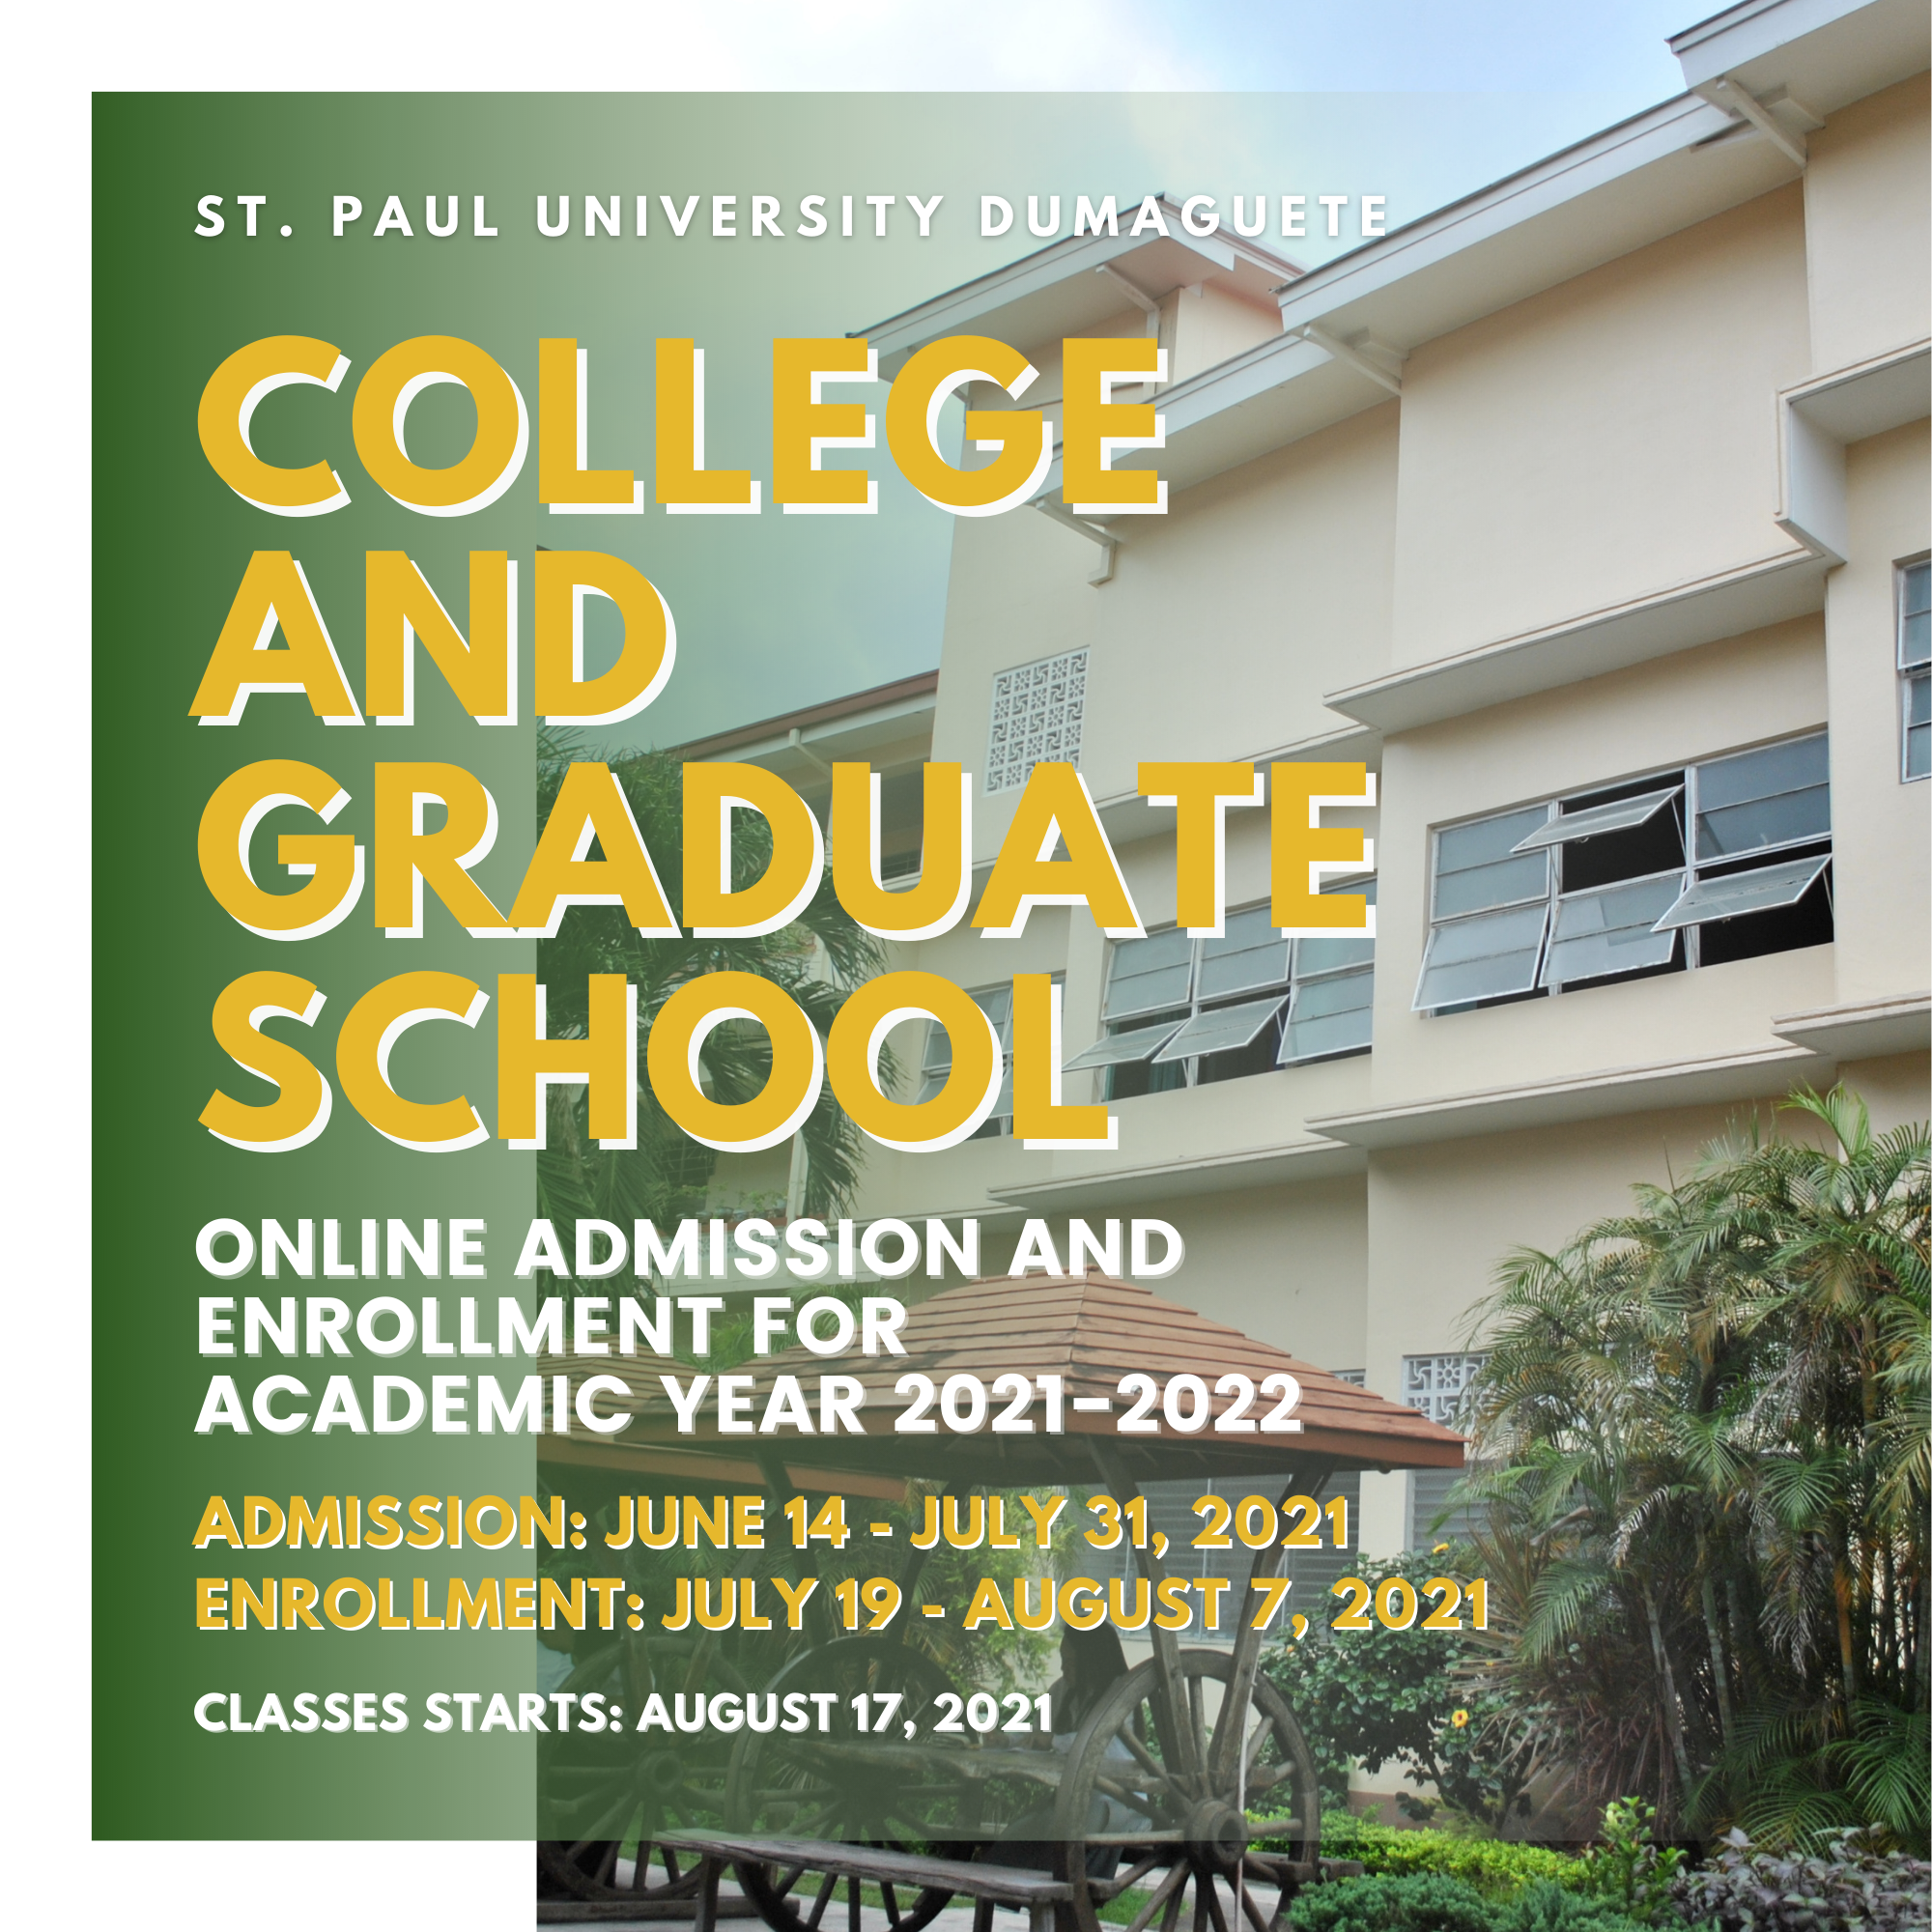 College And Graduate School Online Admission Procedure For Academic Year 2021-2022